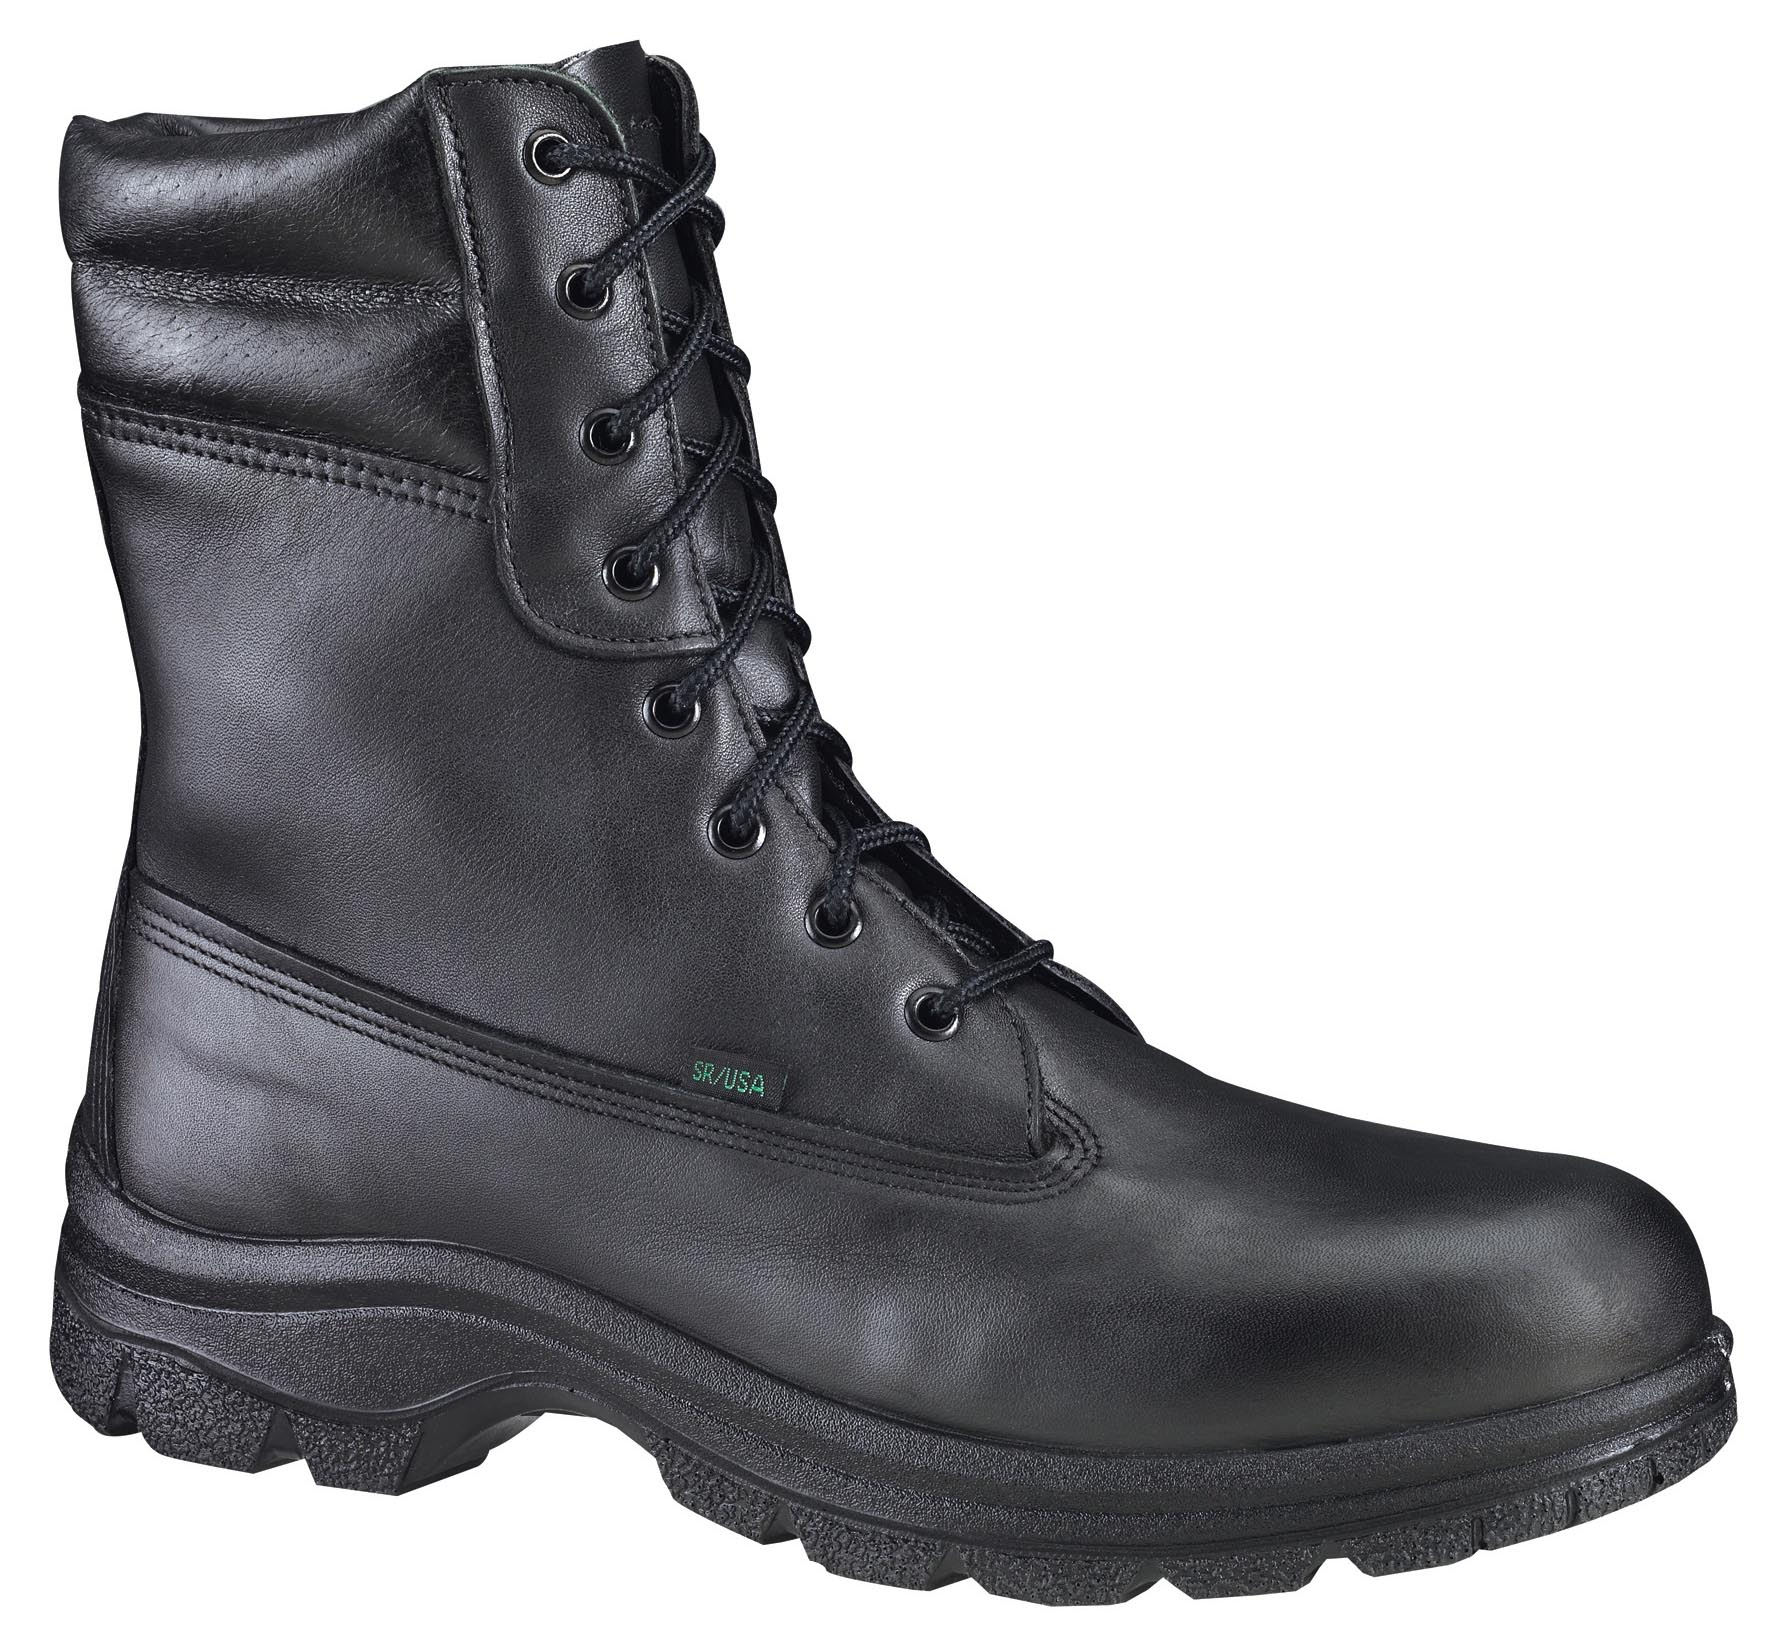 "Thorogood Men's Lace Up Resistant Thorogood 10"" Wildland Fire Boot Black Leather Wide (EE) 834-6731 at Sears.com"